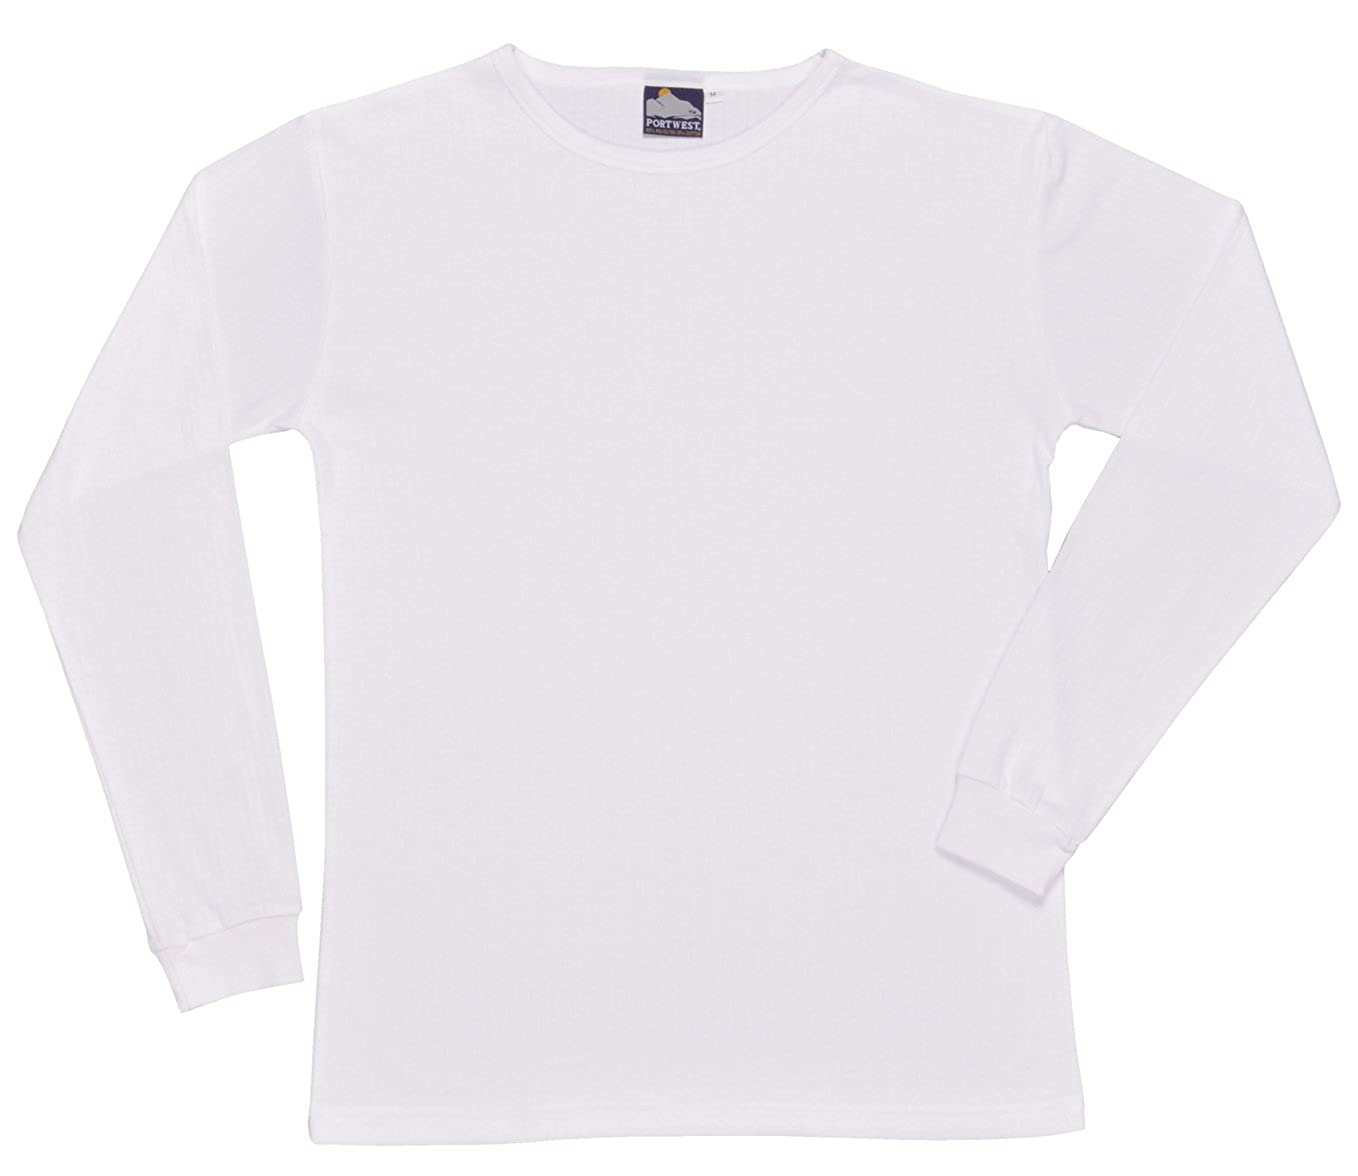 Portwest Mens Thermal T-shirt Long Sleeves Round Neck Innerwear Top Base Layer